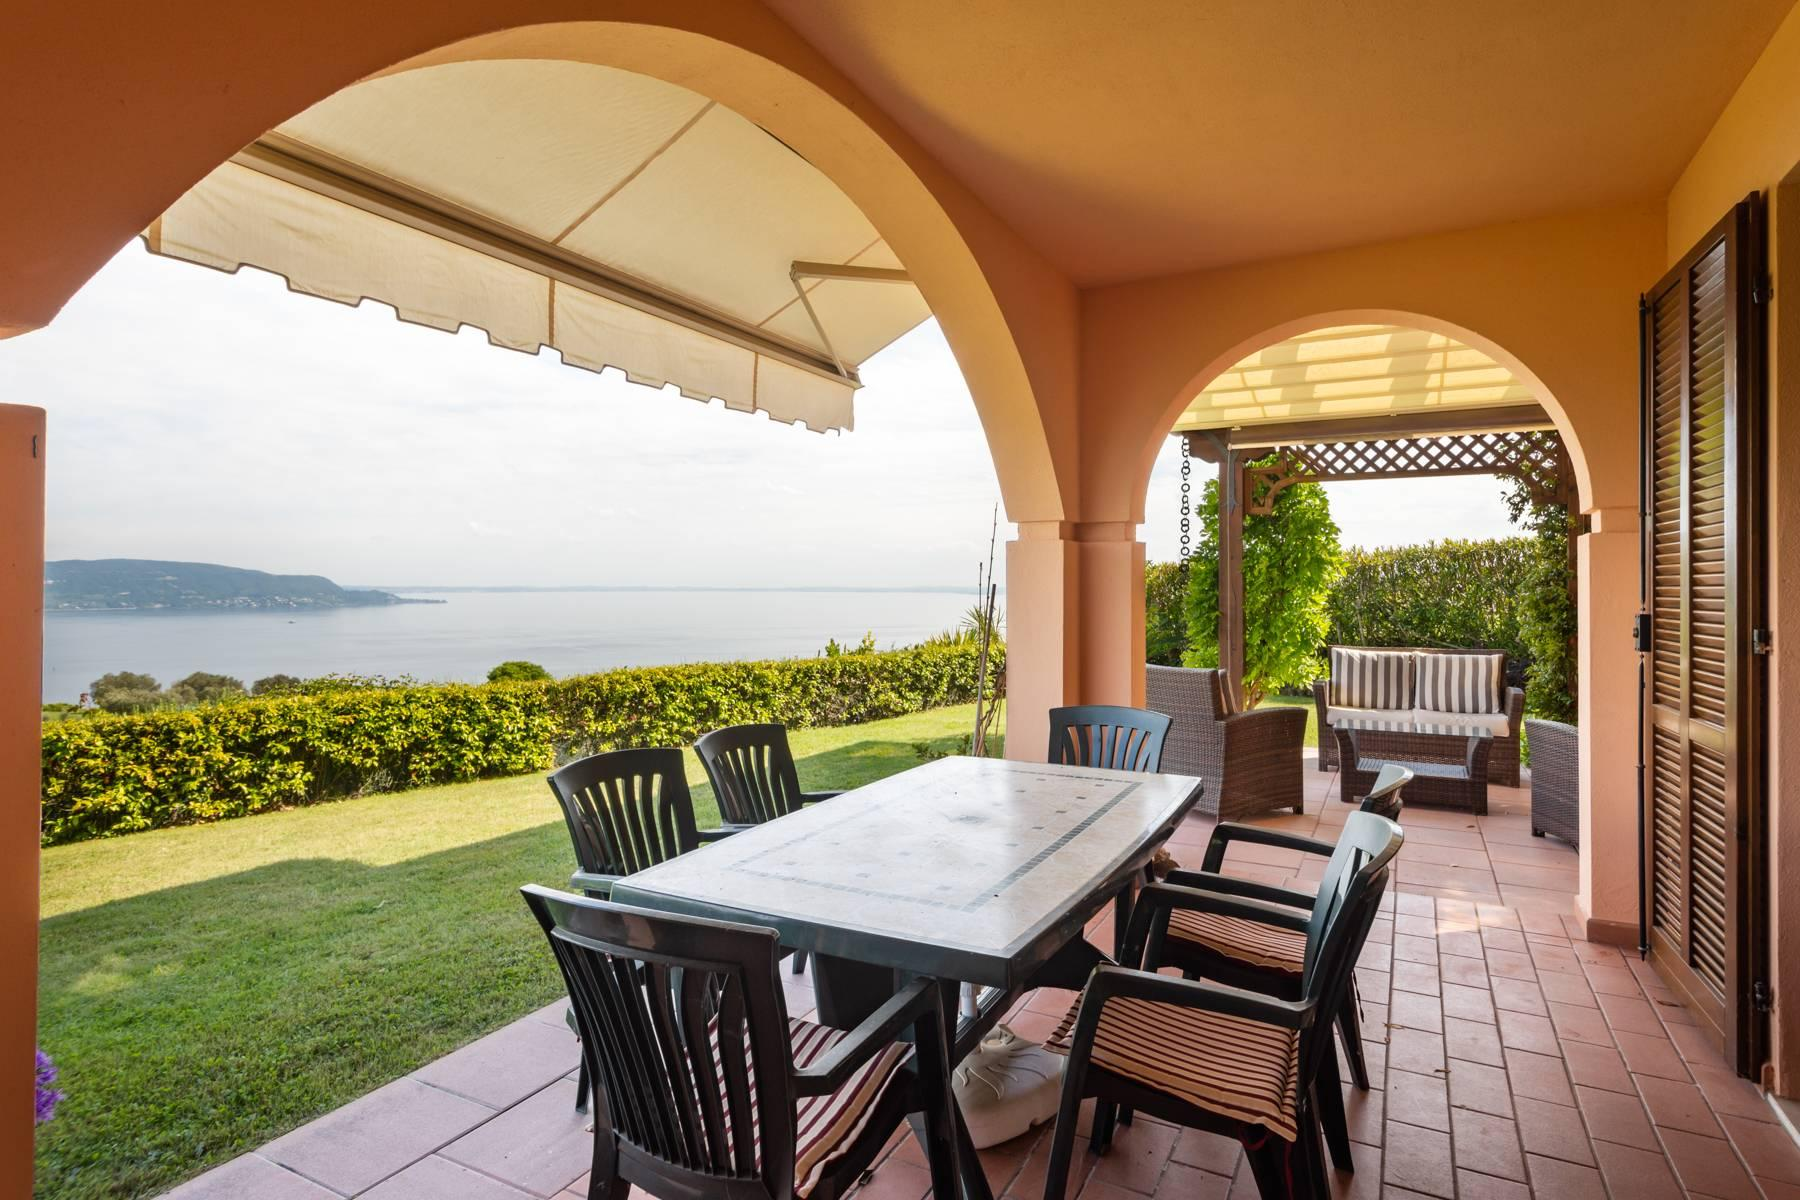 Independent villa with spectacular view - 18